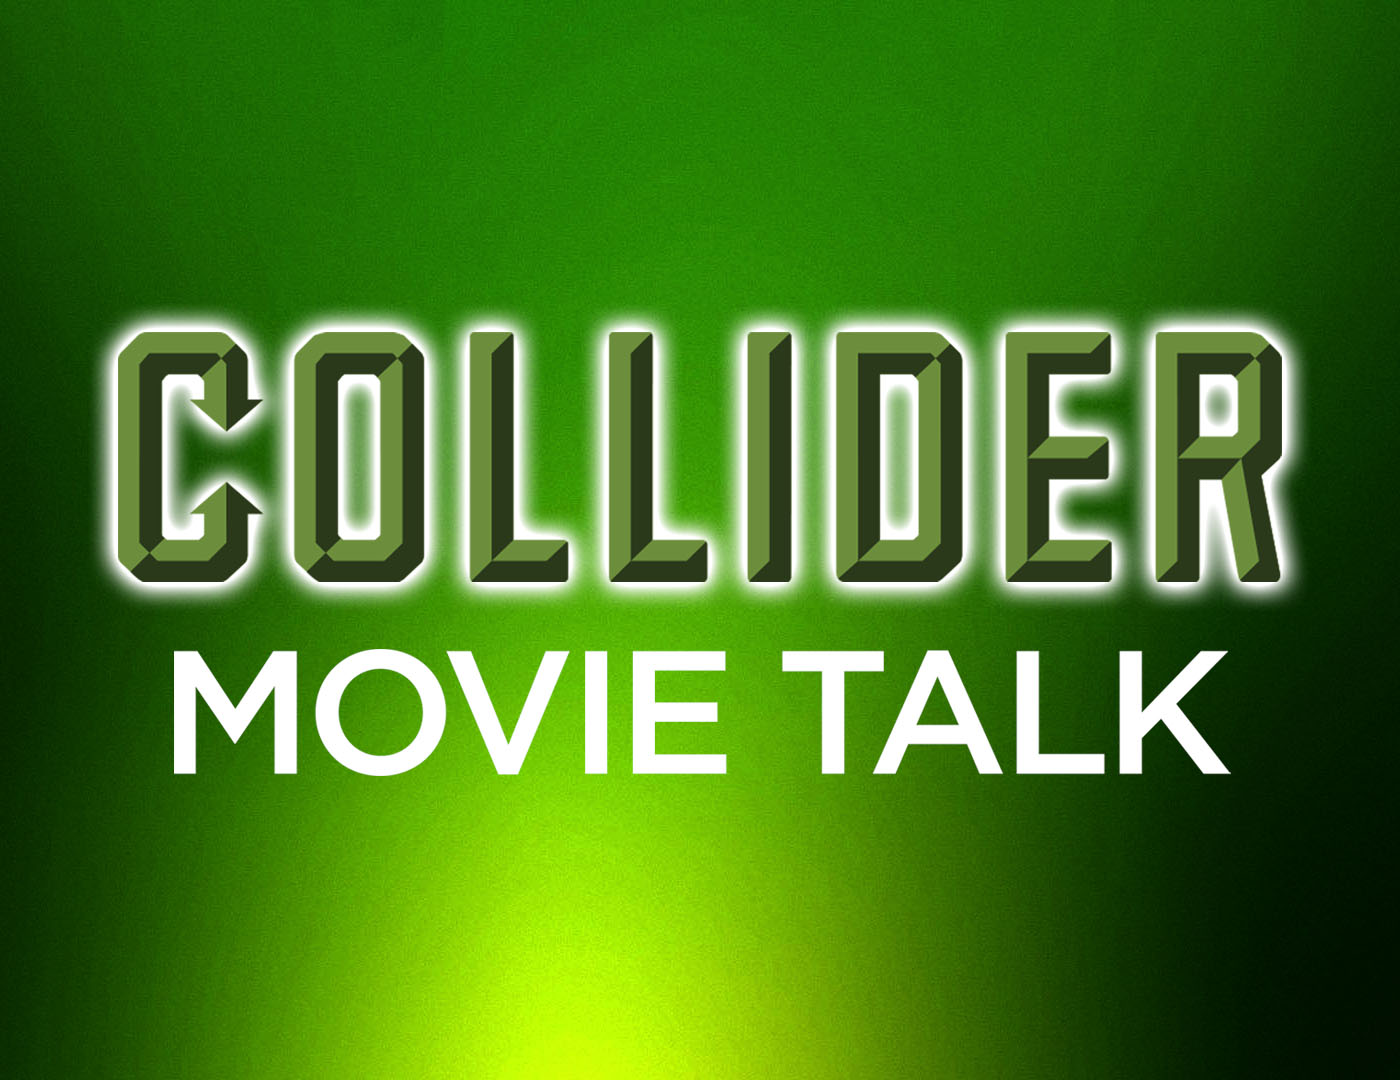 Collider Movie Talk - Civil War To Have Controversial Ending